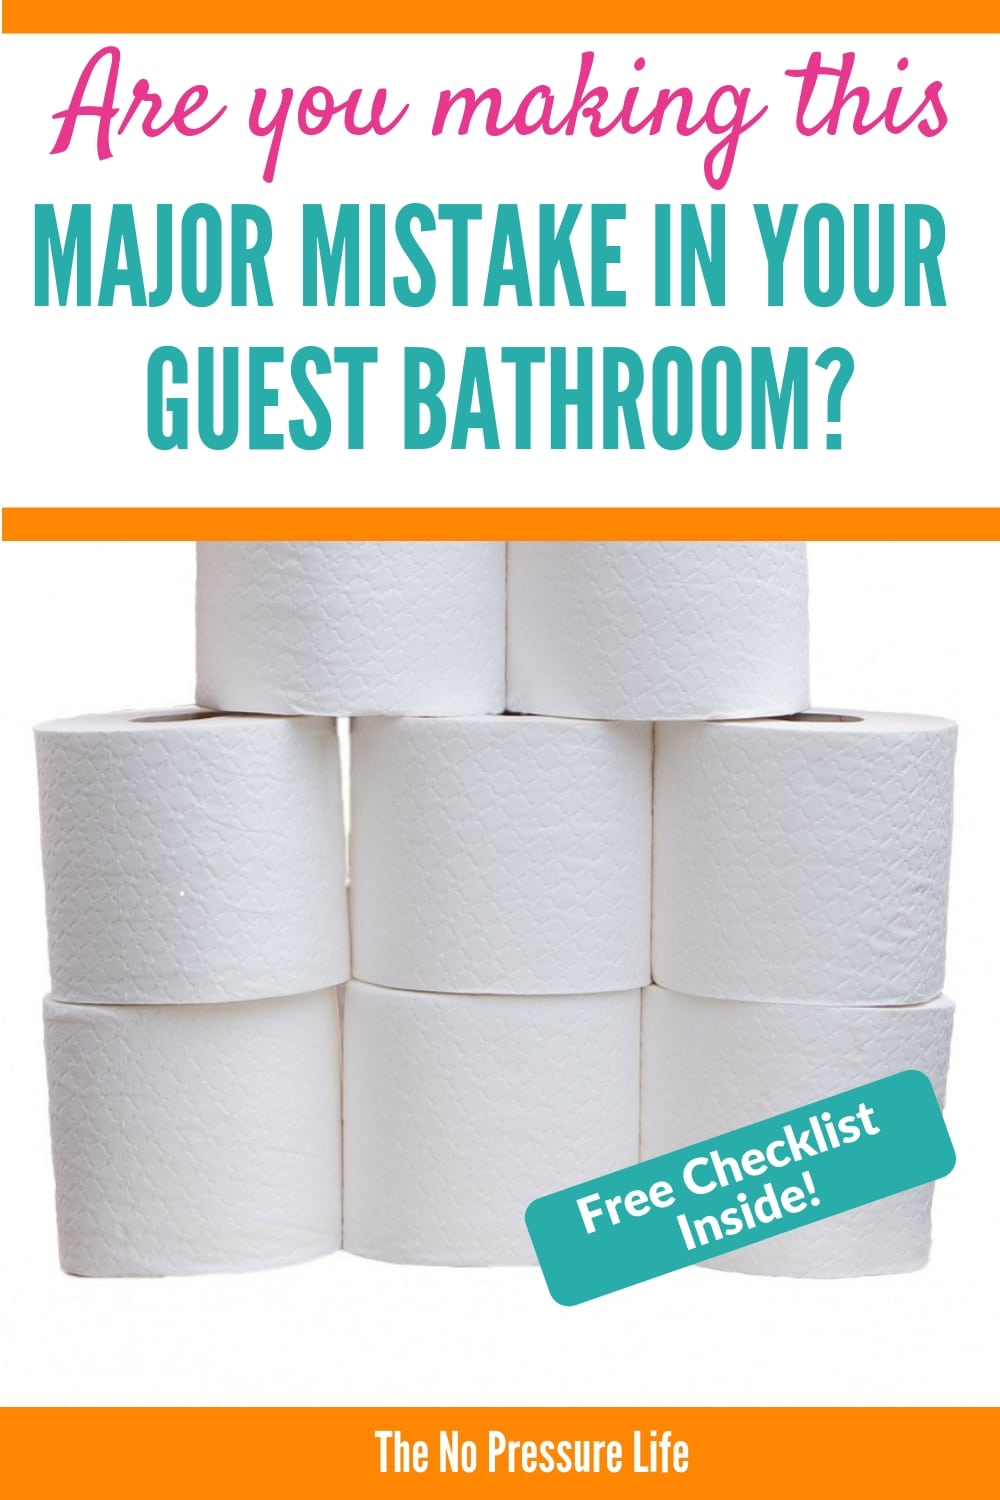 Stack of toilet paper with text: are you making this major mistake in your guest bathroom?